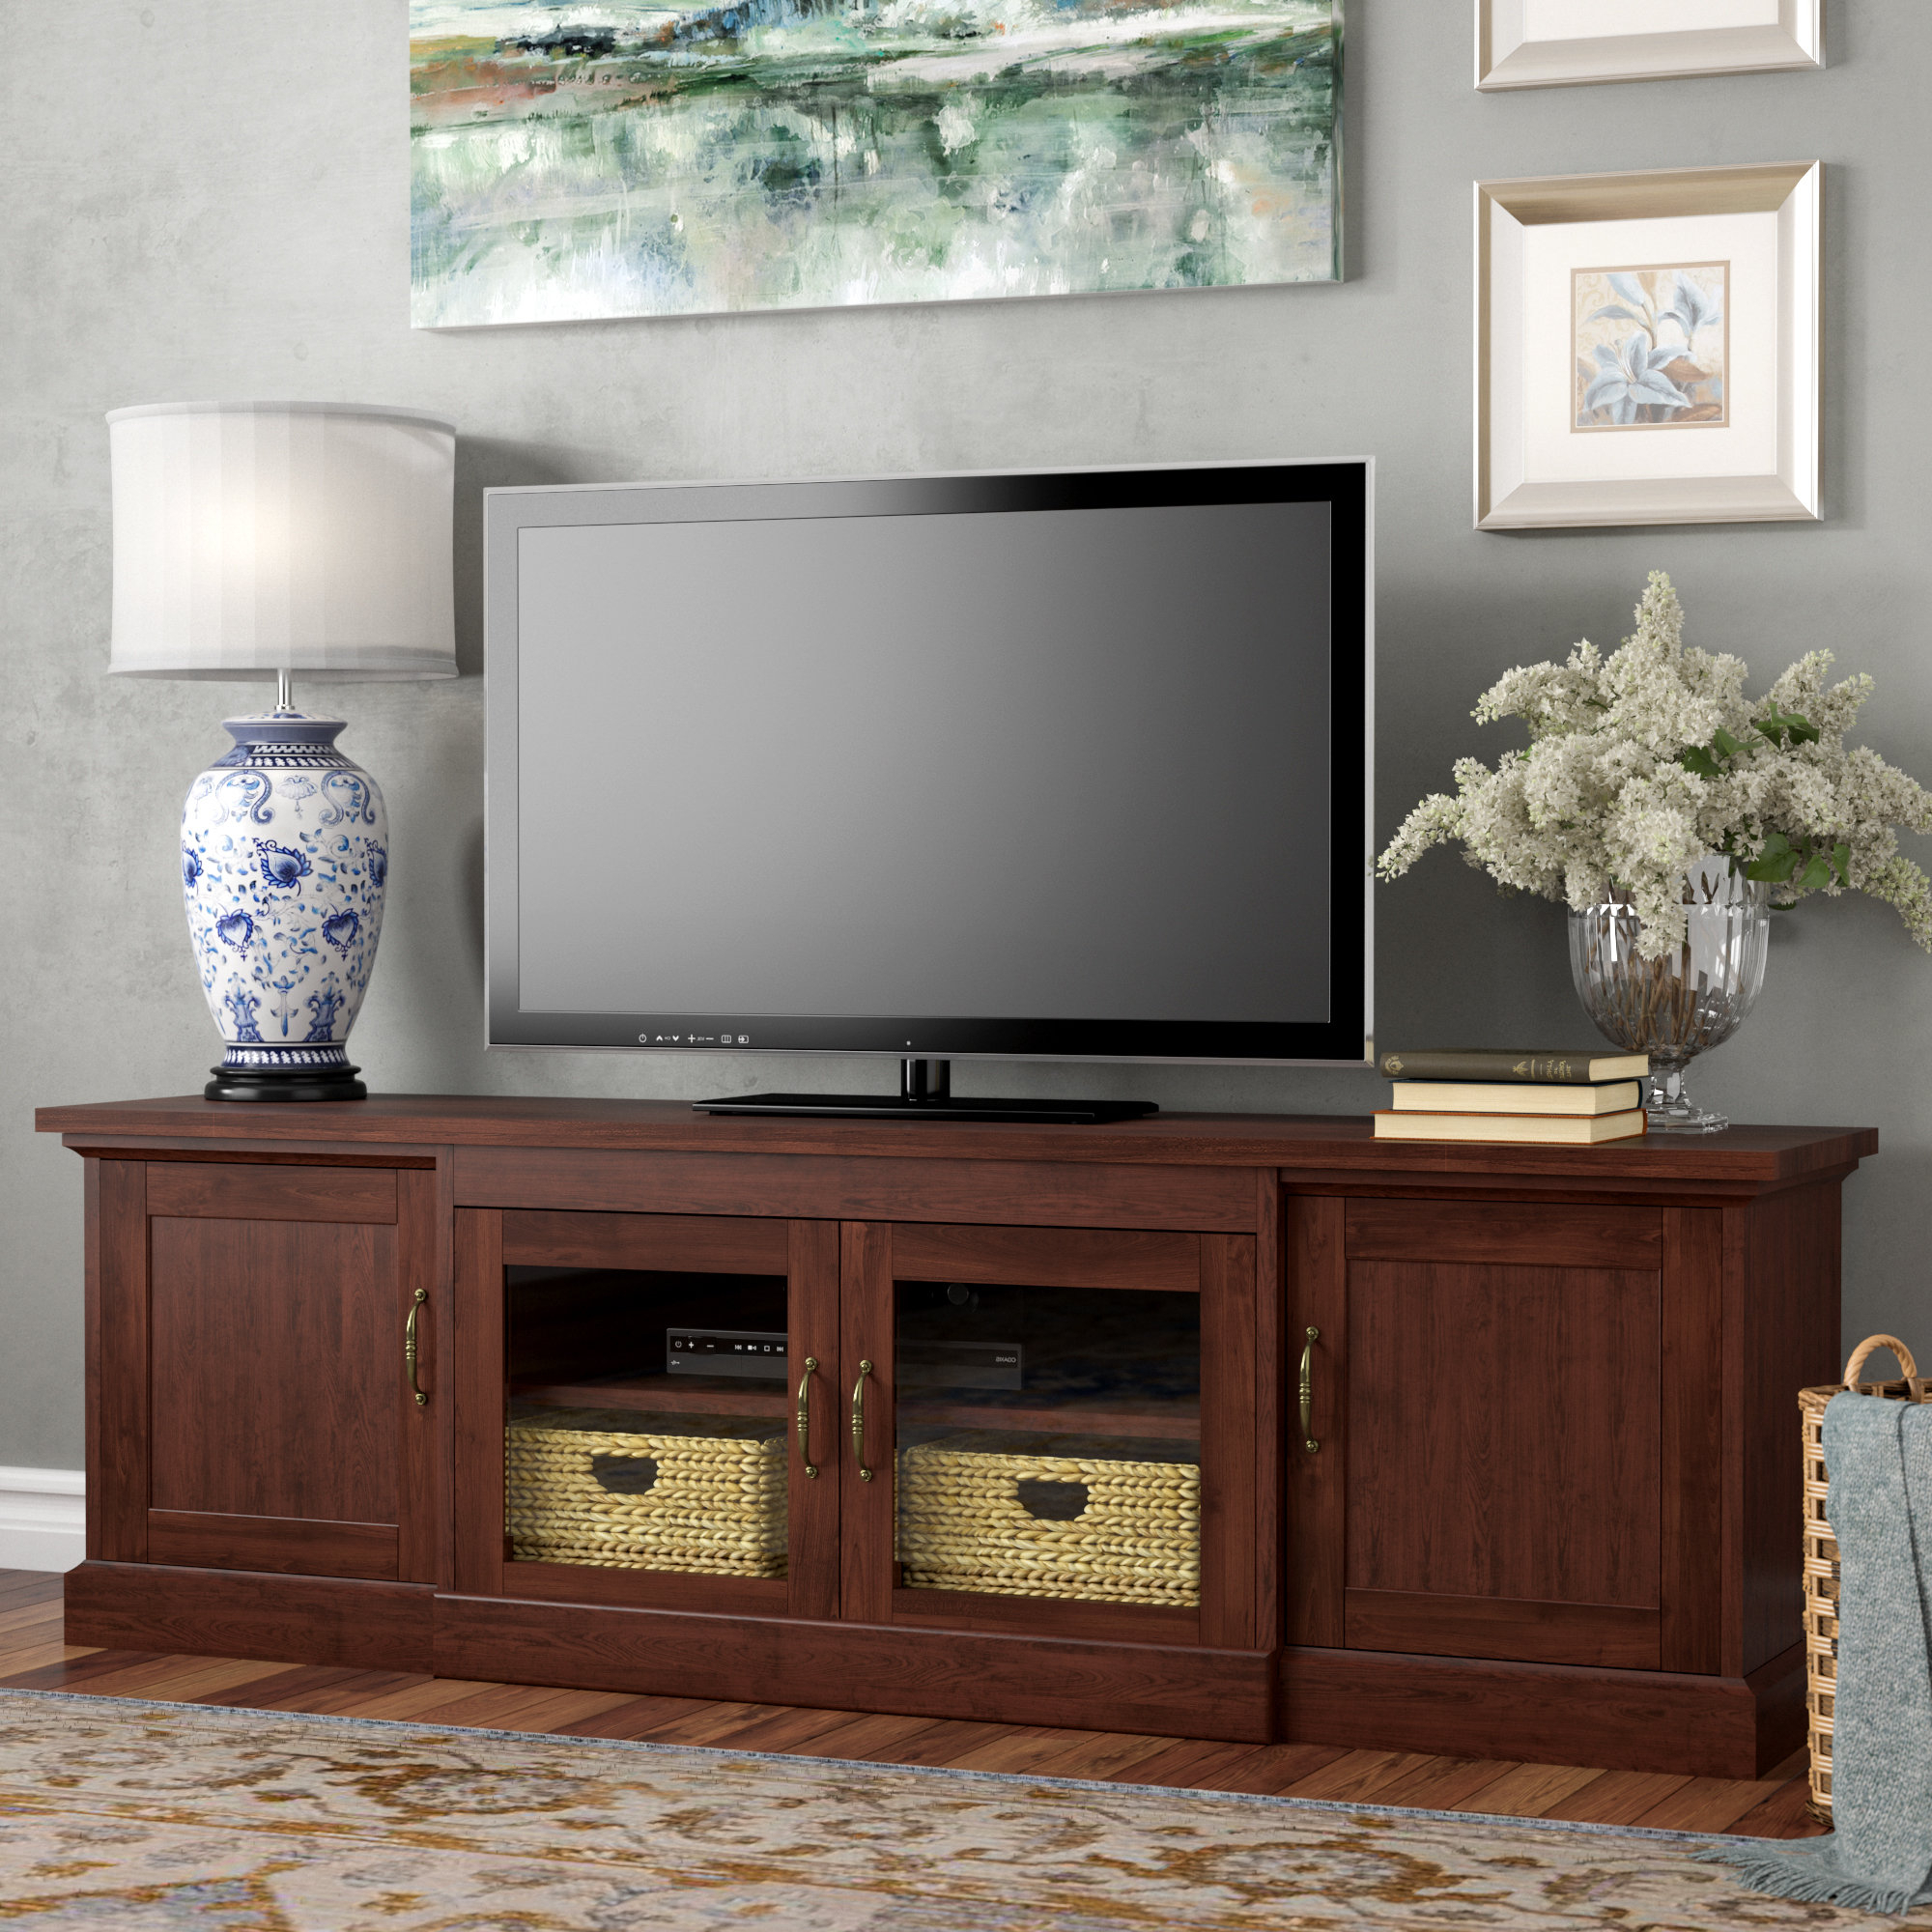 60 69 Inches Tv Stands | Birch Lane In Edwin Grey 64 Inch Tv Stands (View 4 of 20)